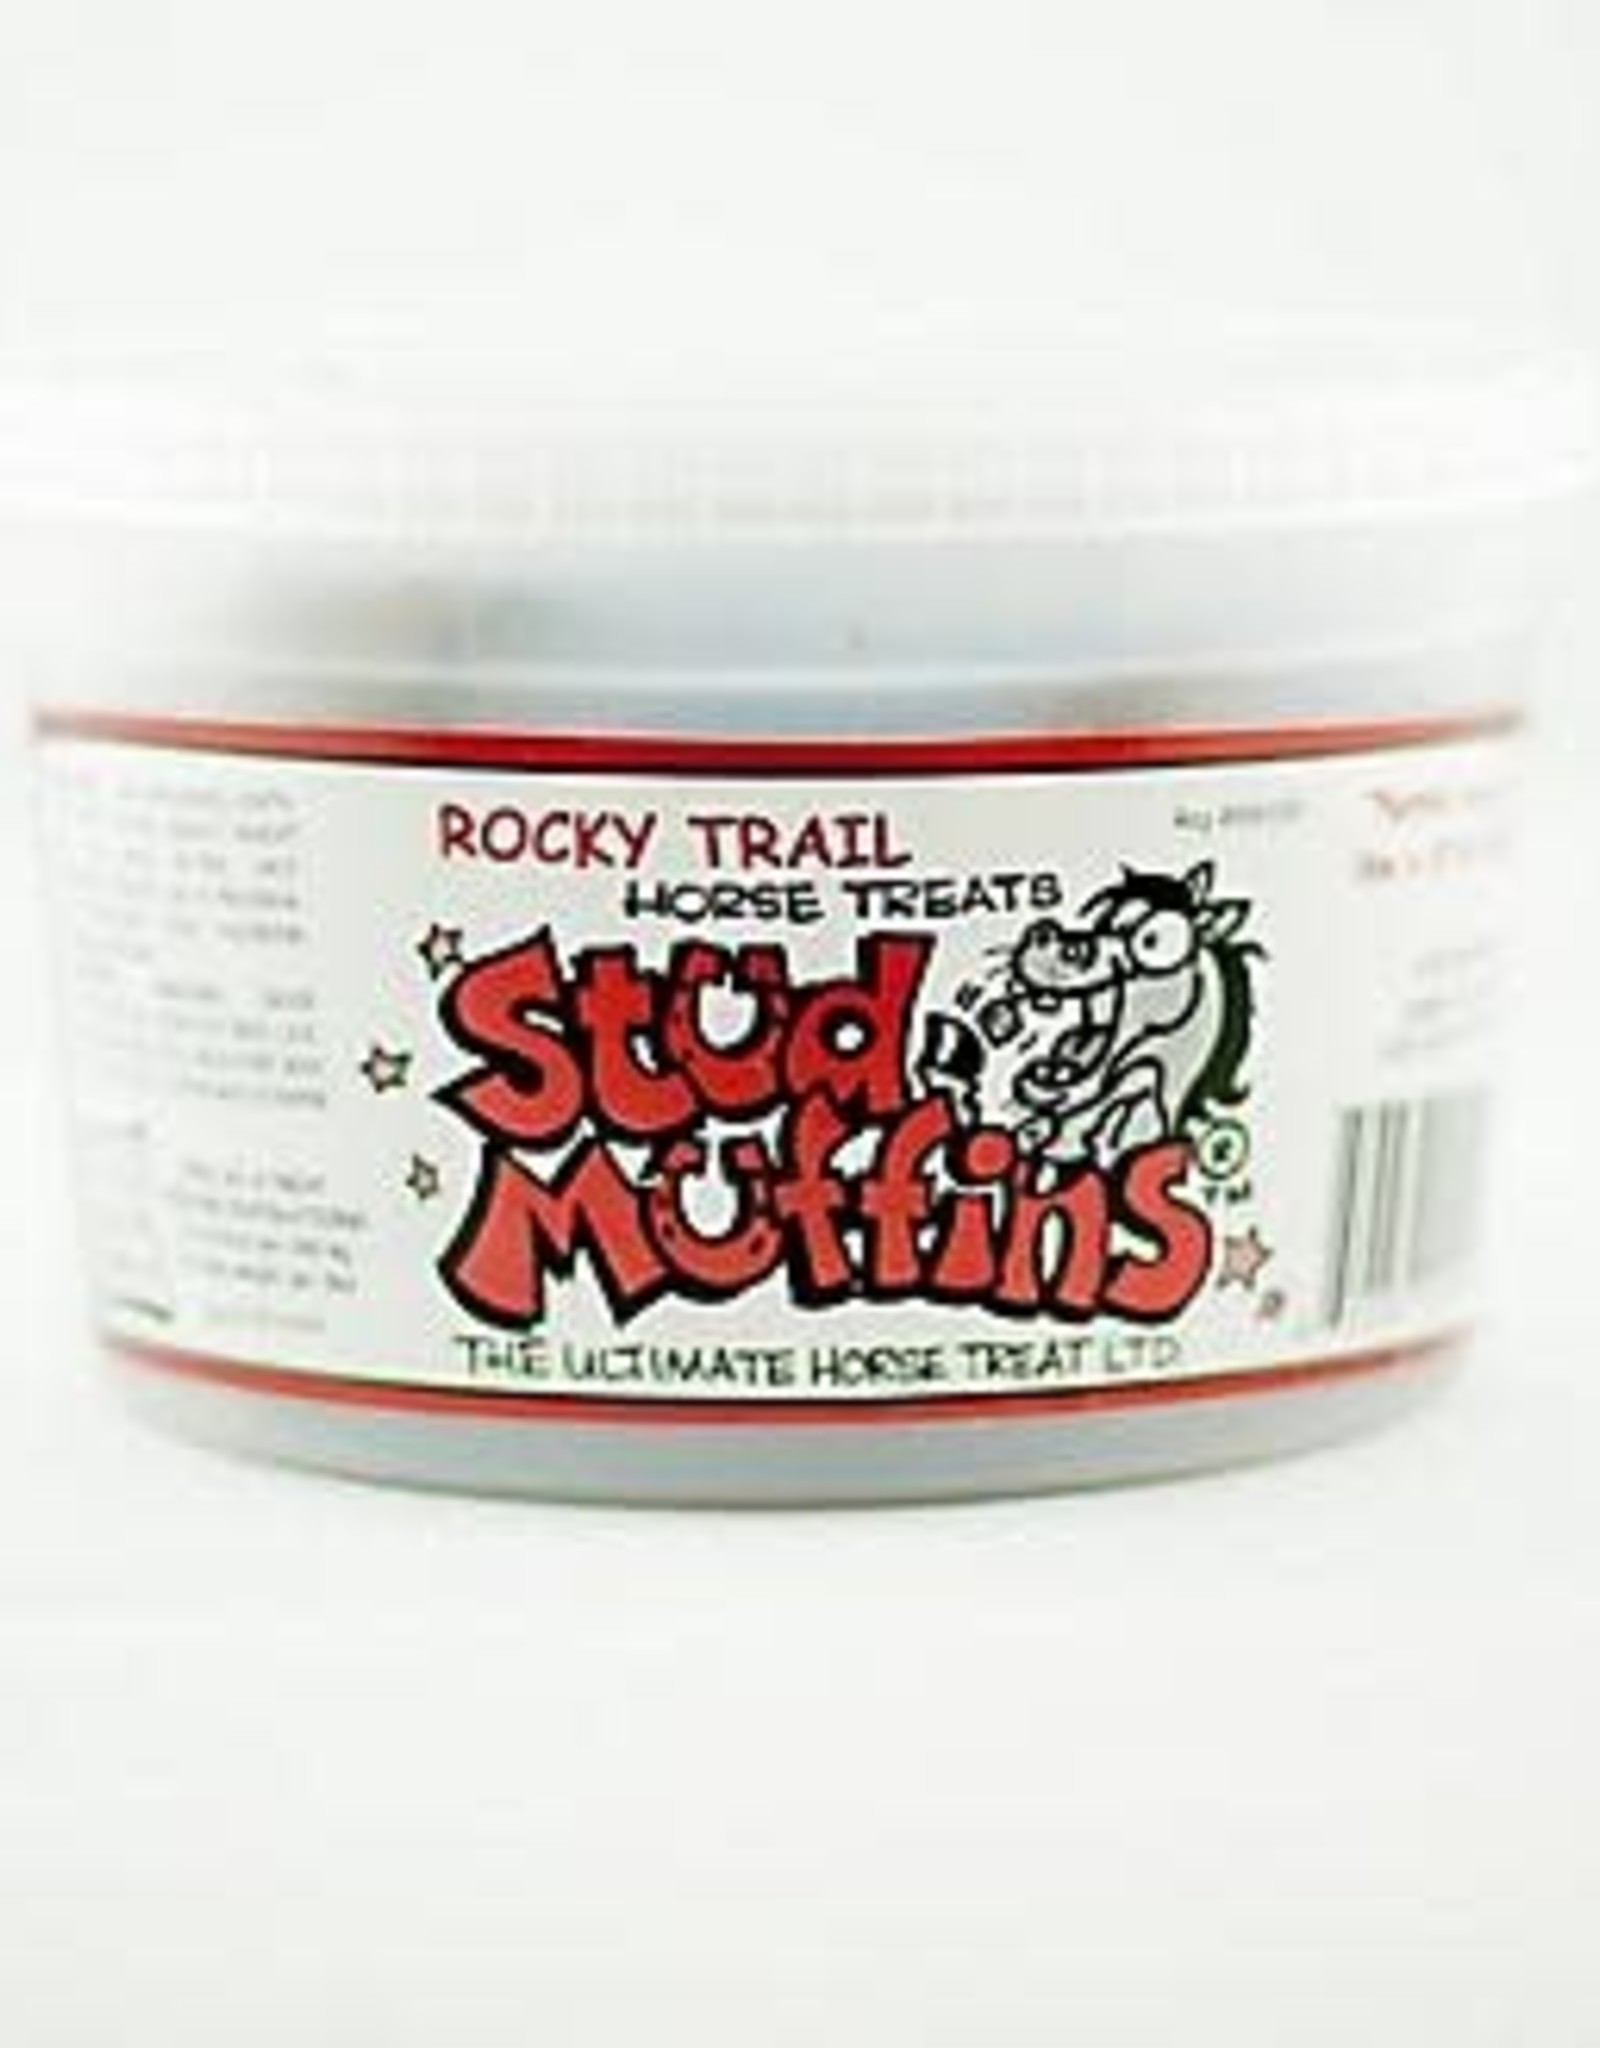 STUD MUFFINS HORSE TREATS ROCKY TRAIL 20 OZ